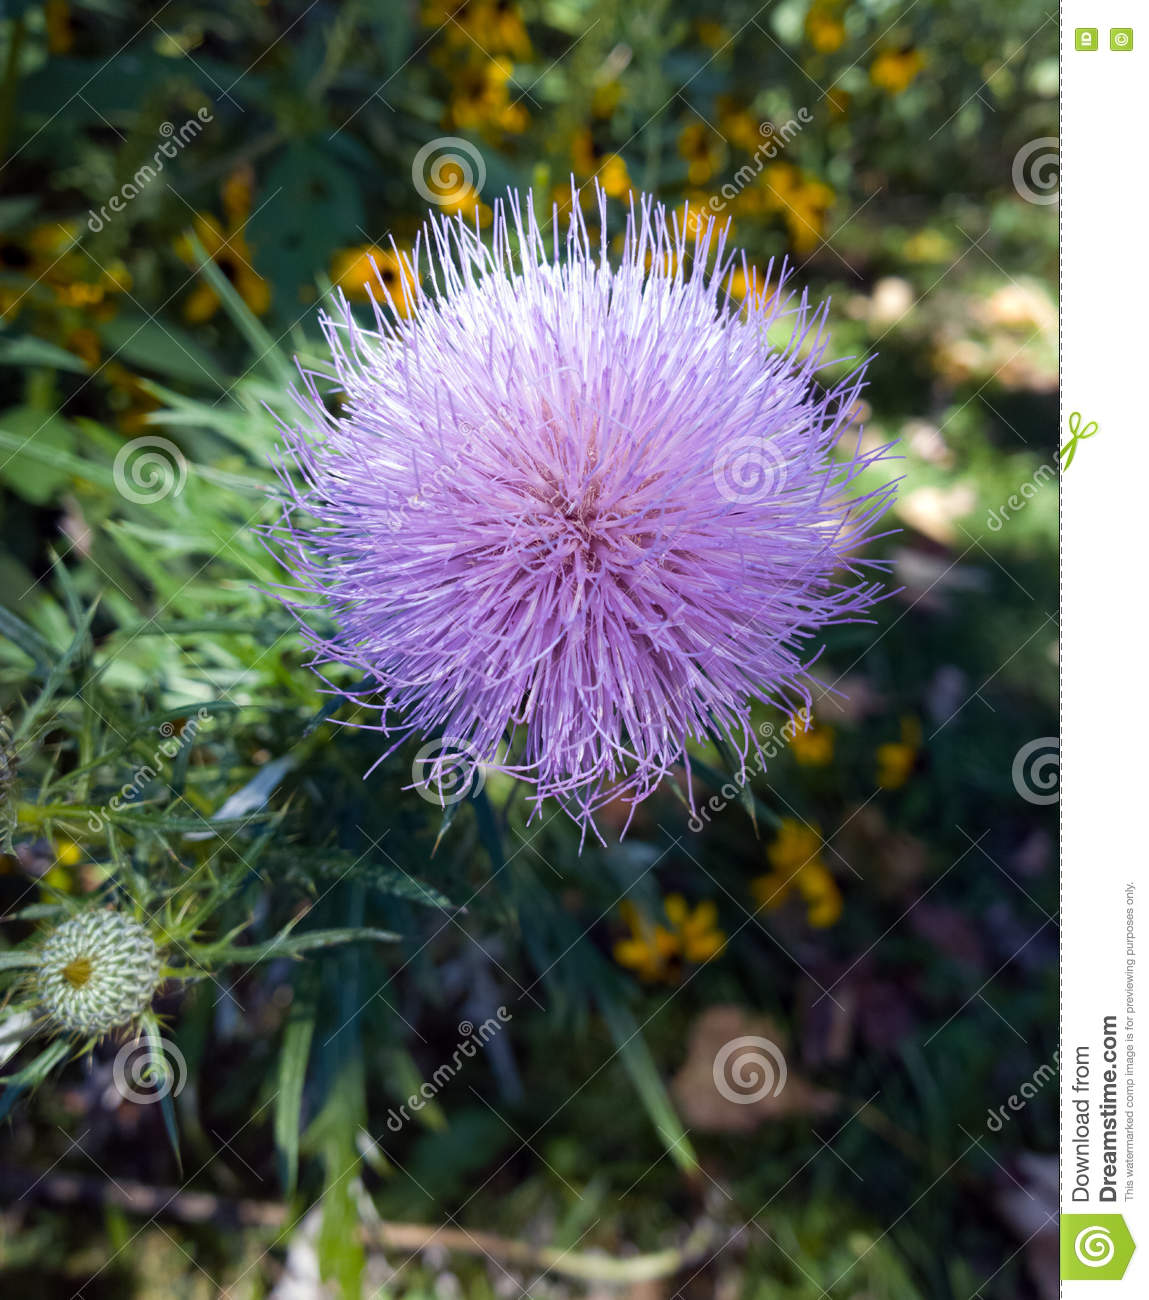 Fuzzy Flower Stock Image Image Of Thorny Flower Wild 76920663